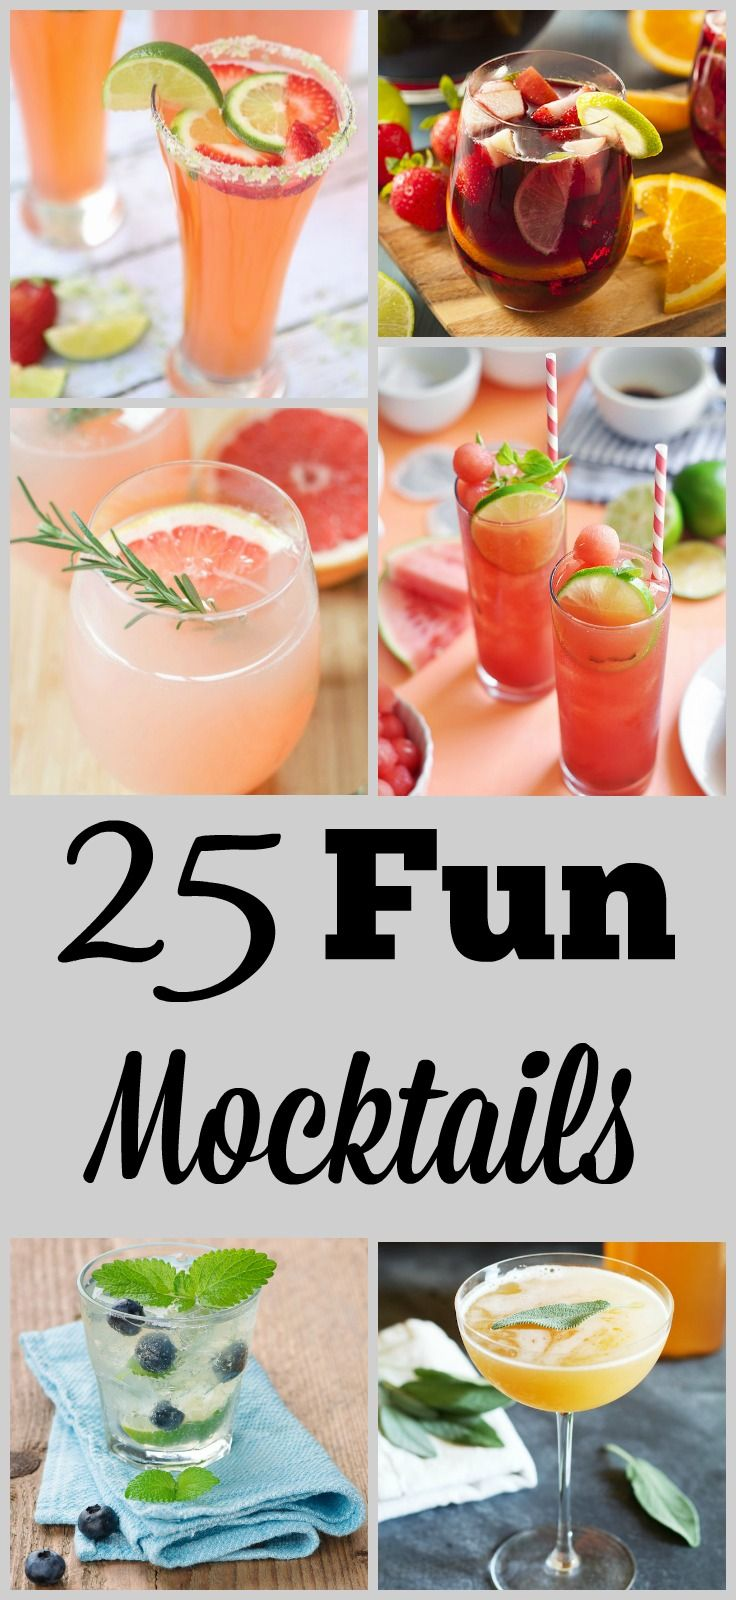 25 fun mocktails recipes beverage and drinks alcohol for Fun alcoholic drink recipes